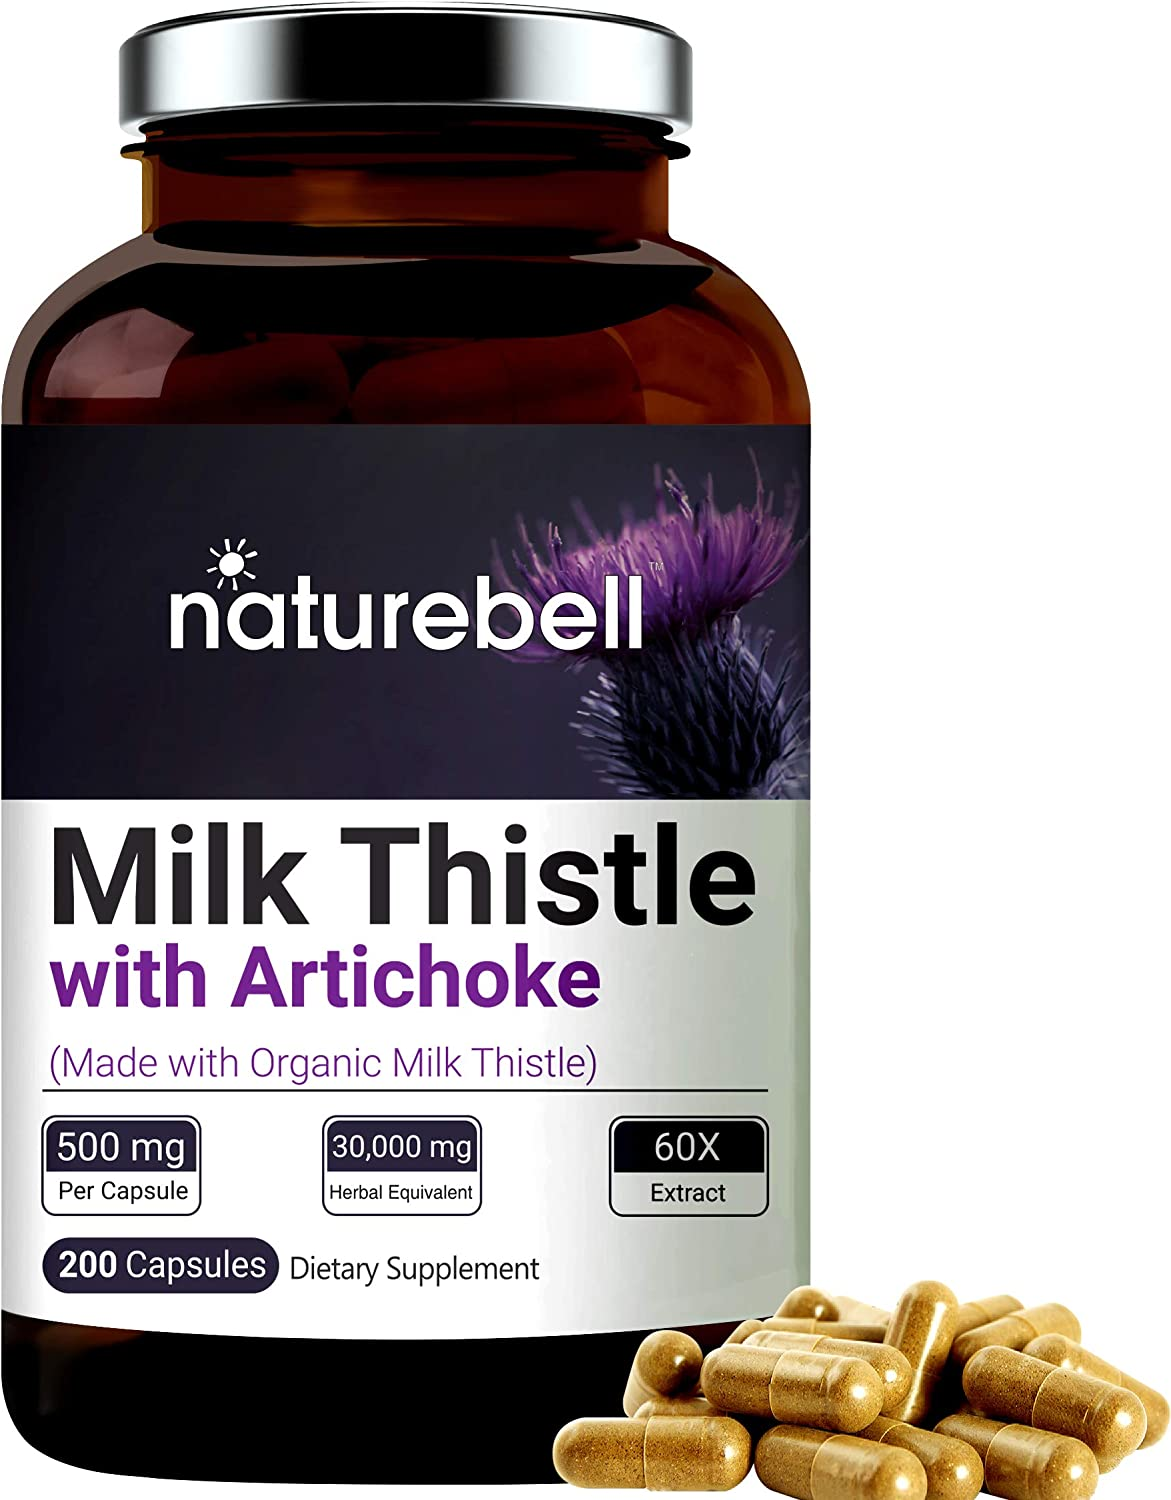 Milk Thistle Extract 30:1, Made with Organic Milk Thistle Powder and Artichoke Extract, 9000mg Herbal Equivalent, 200 Capsules, Active Natural Silymarin for Liver Health, Non-GMO and Made in USA